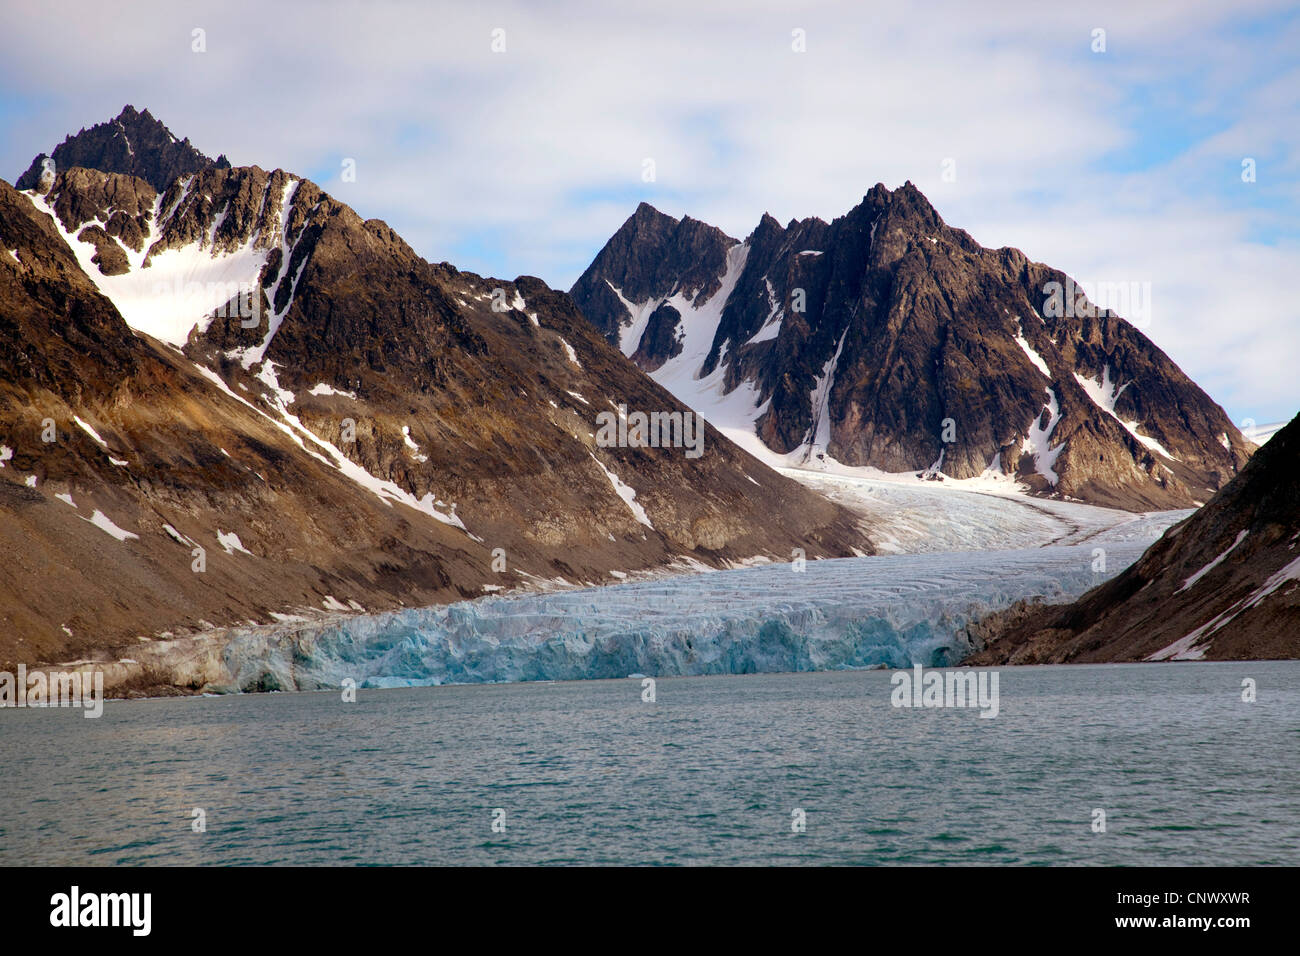 glacier at Magdalena Bay (Magdalenenfjorden) with the melting clear to see at the mountain slopes, Norway, Svalbard, - Stock Image